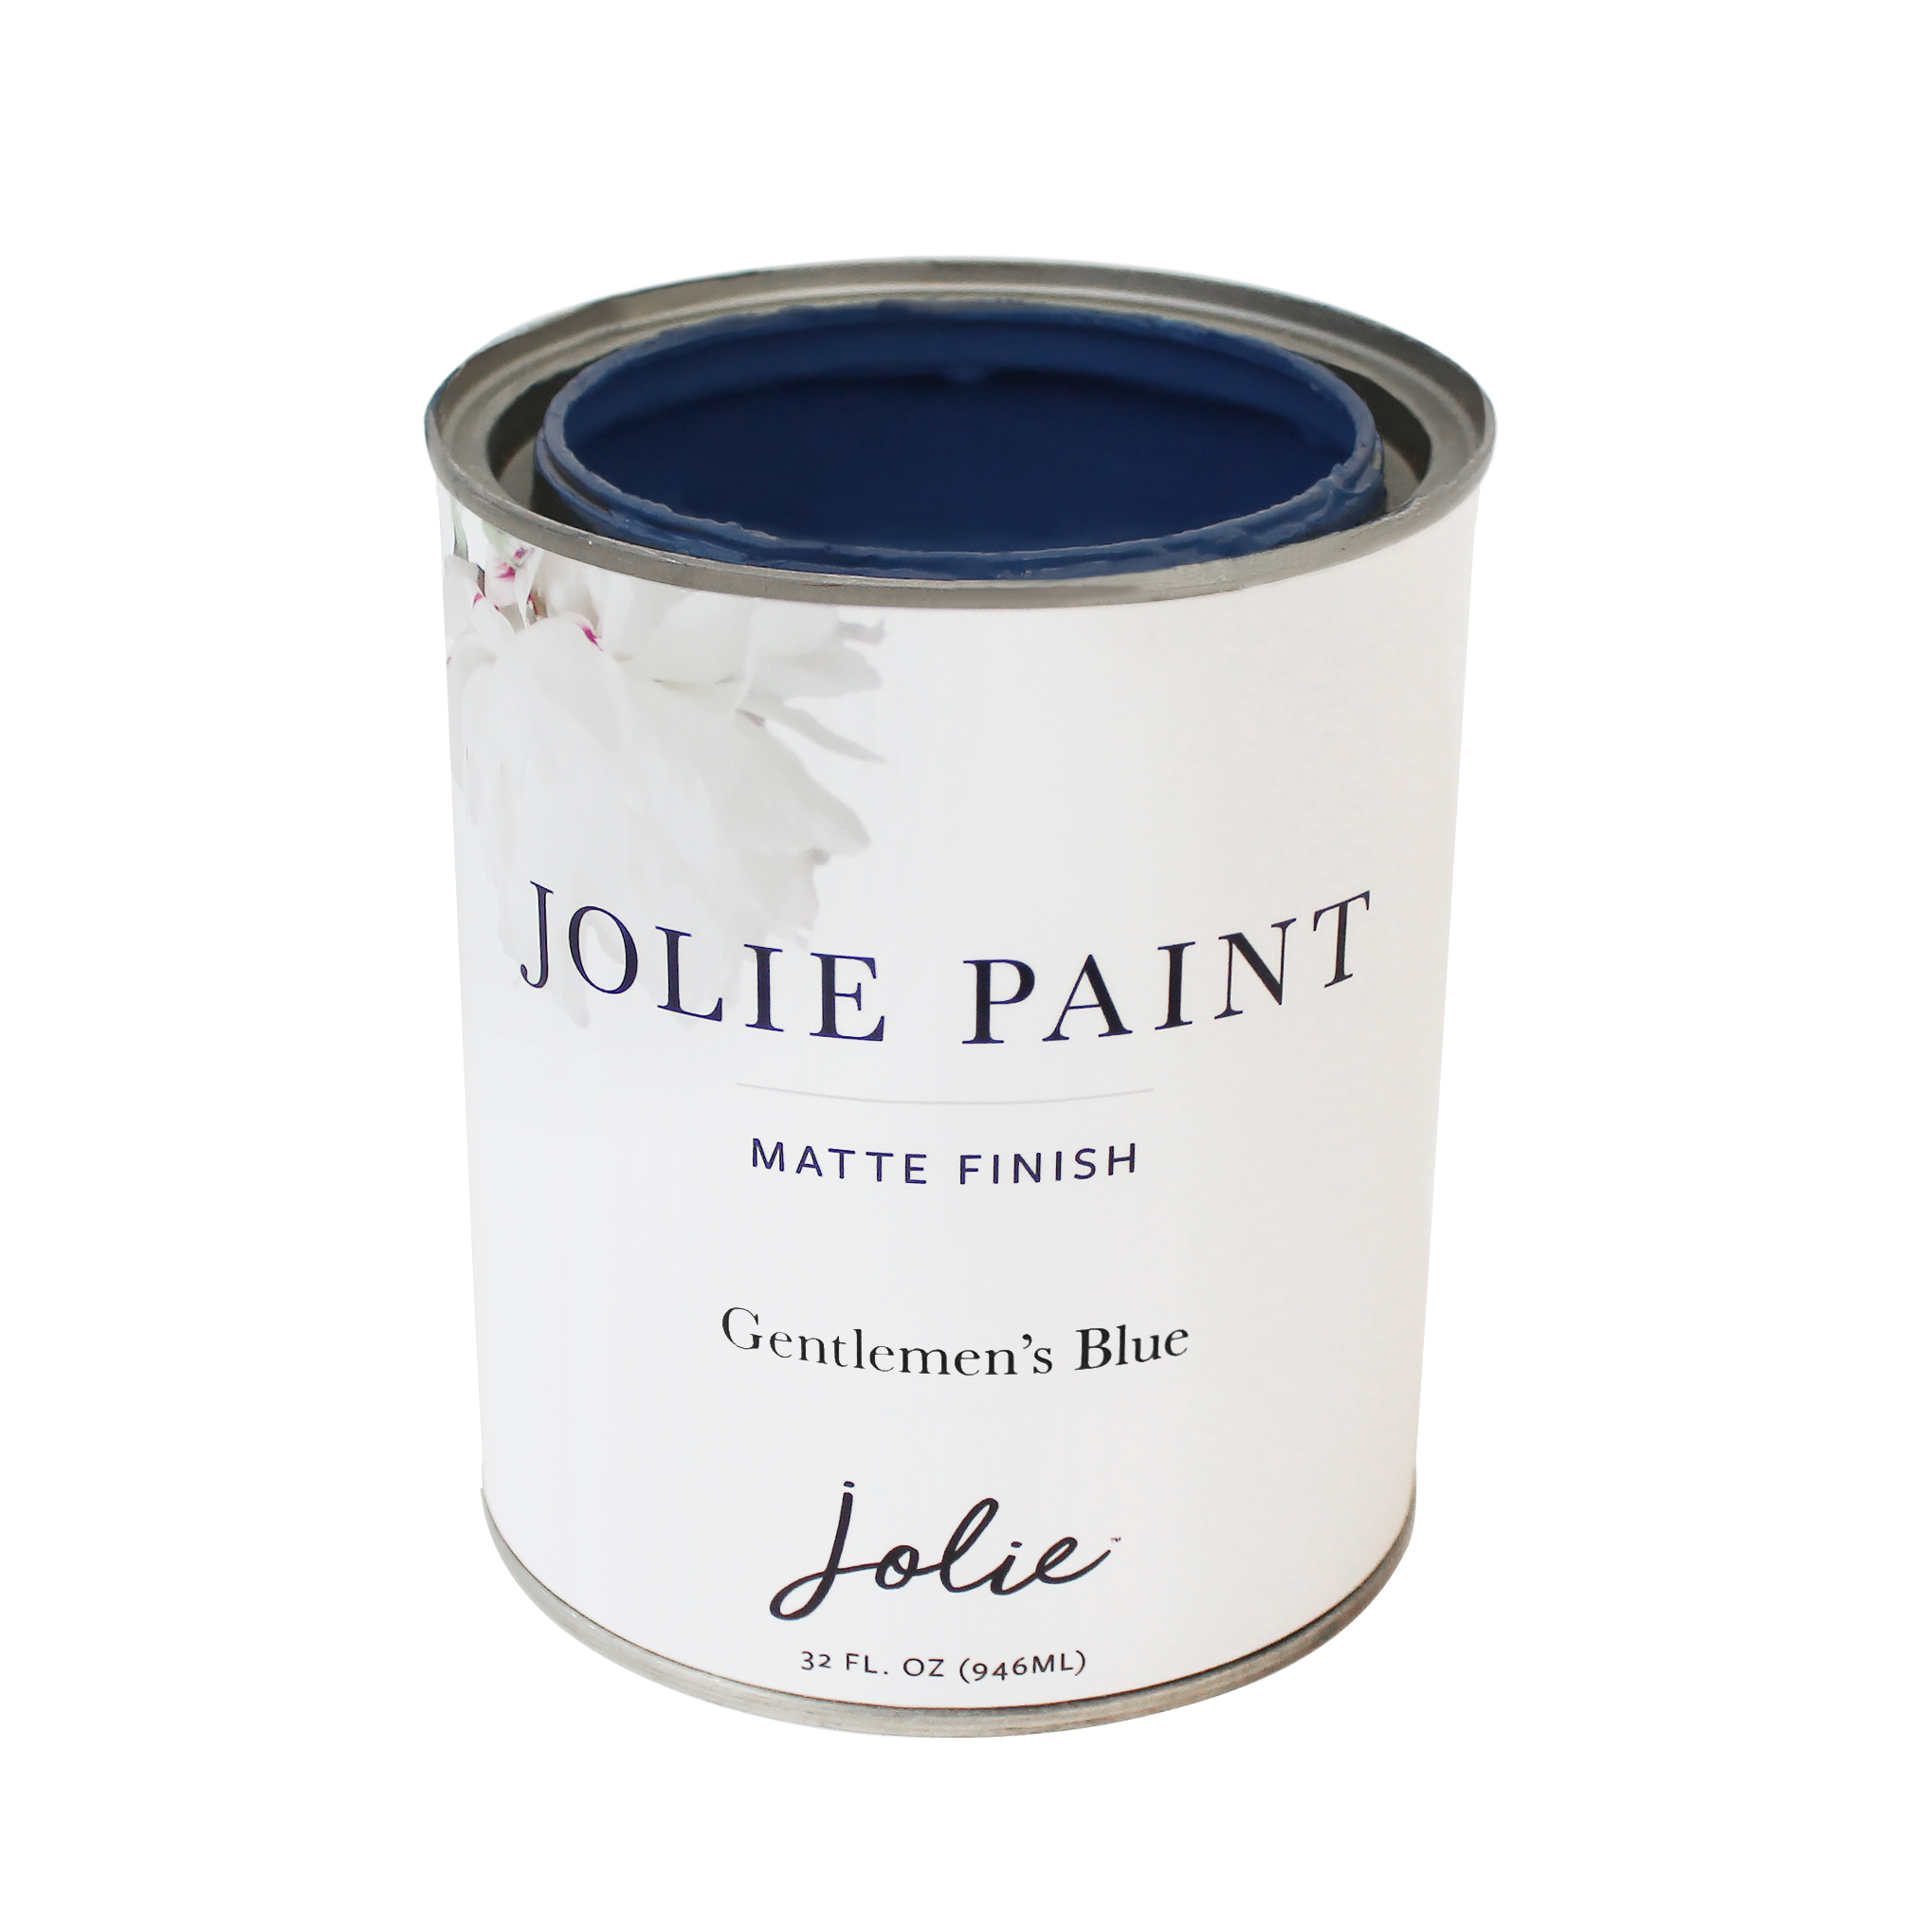 Gentleman's Blue - Jolie Paint